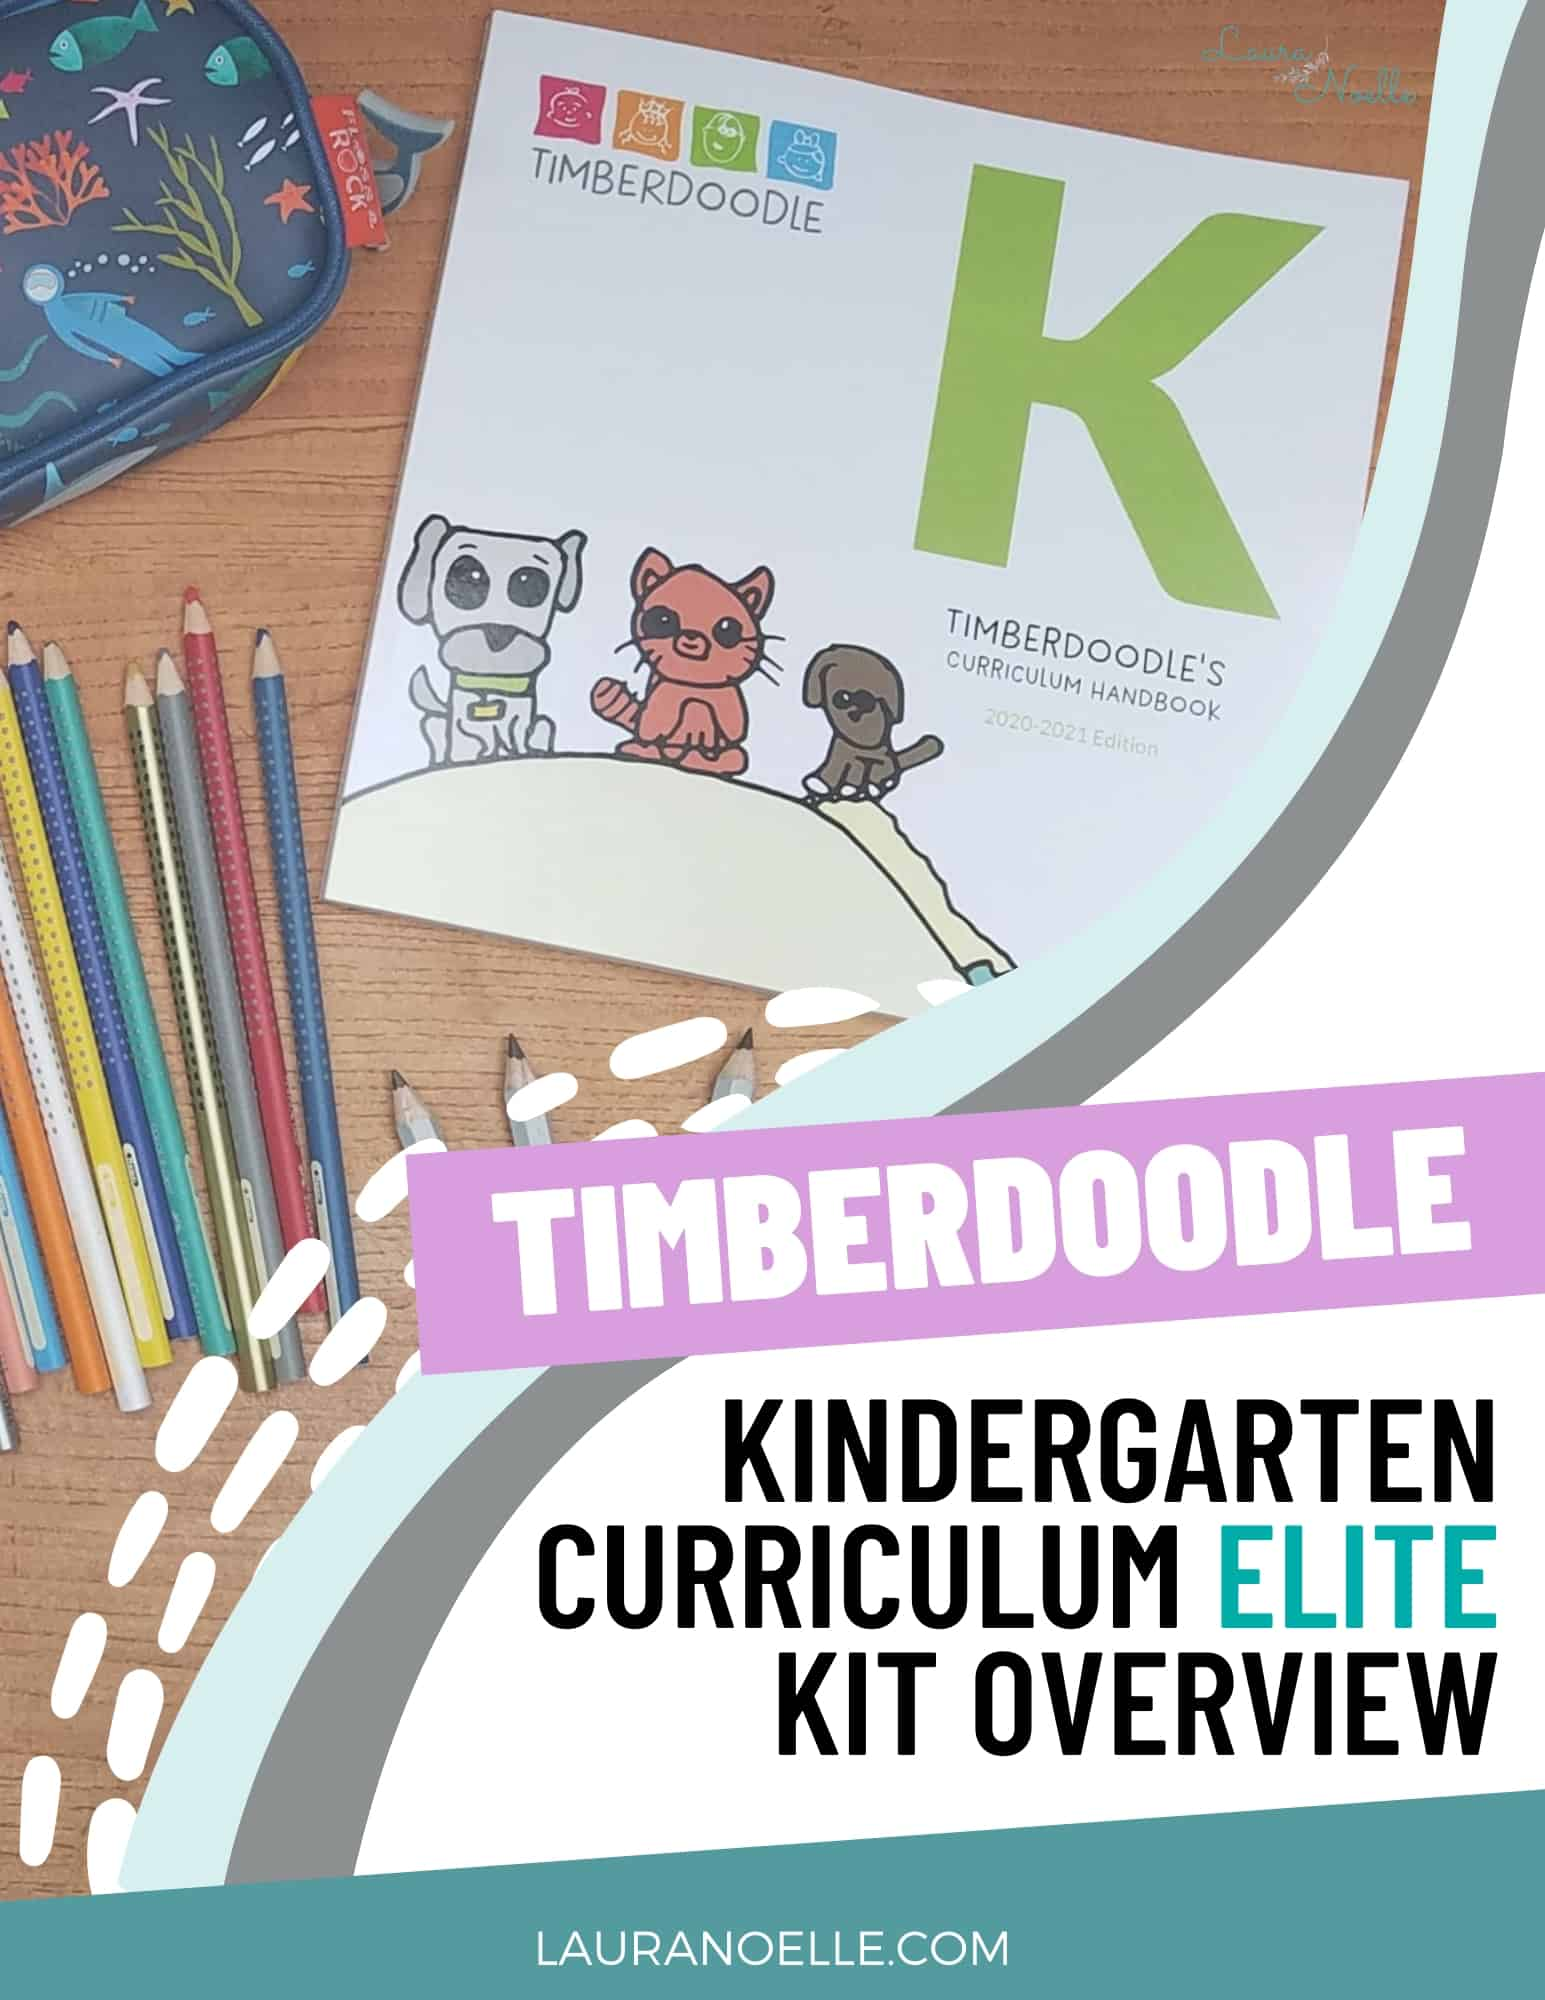 Look inside the new Timberdoodle Kindergarten Elite kit that has hands-on kids ready to learn!